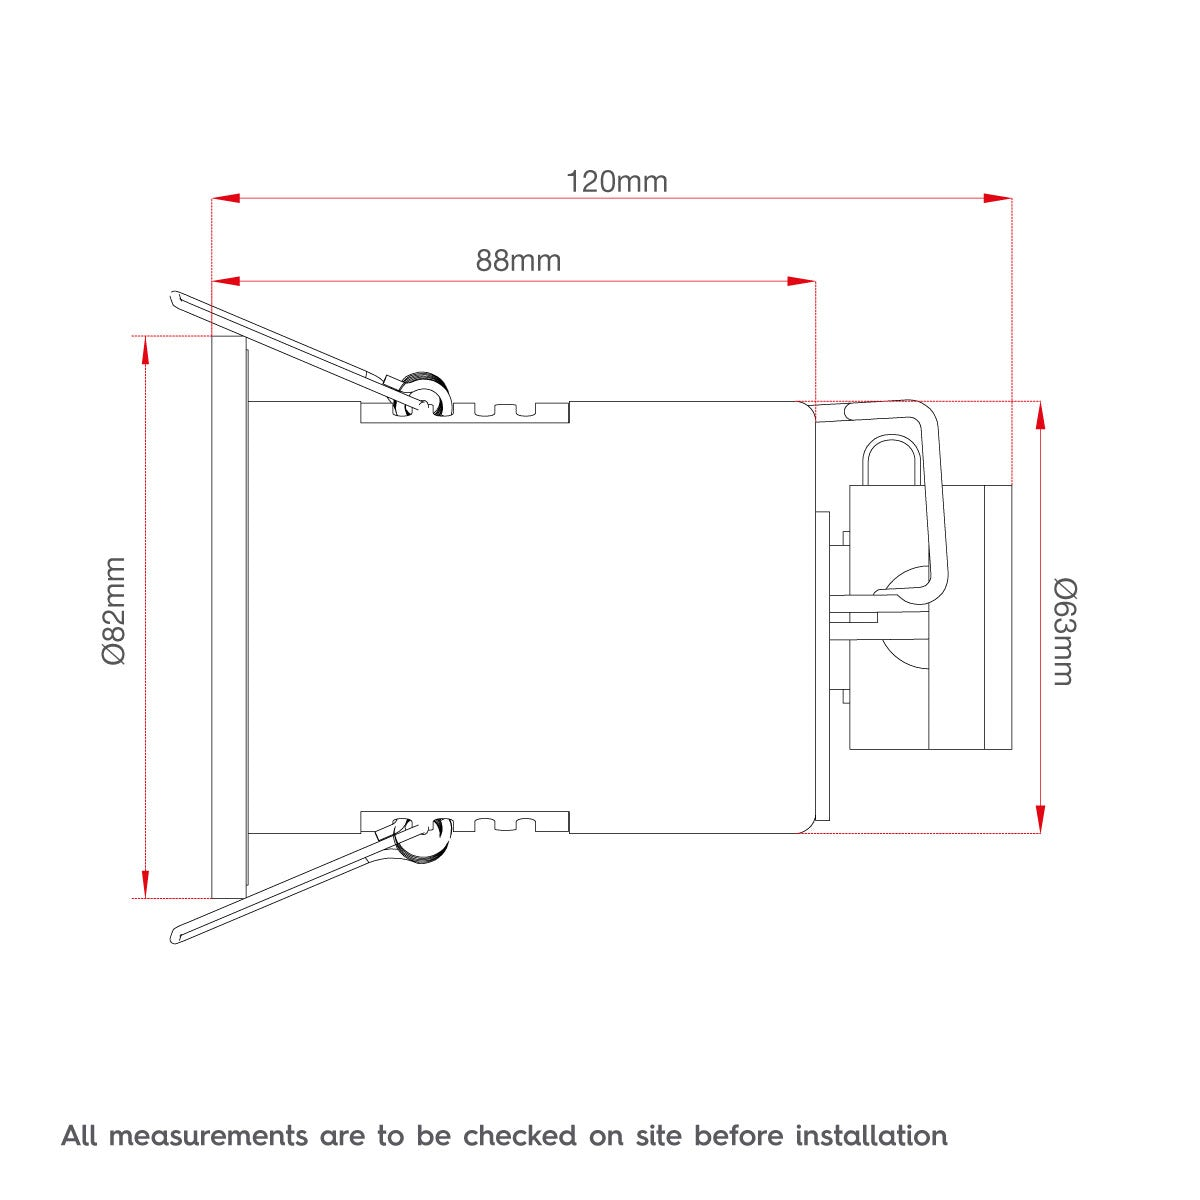 Dimensions for Forum IP65 fire rated cool white shower light in white